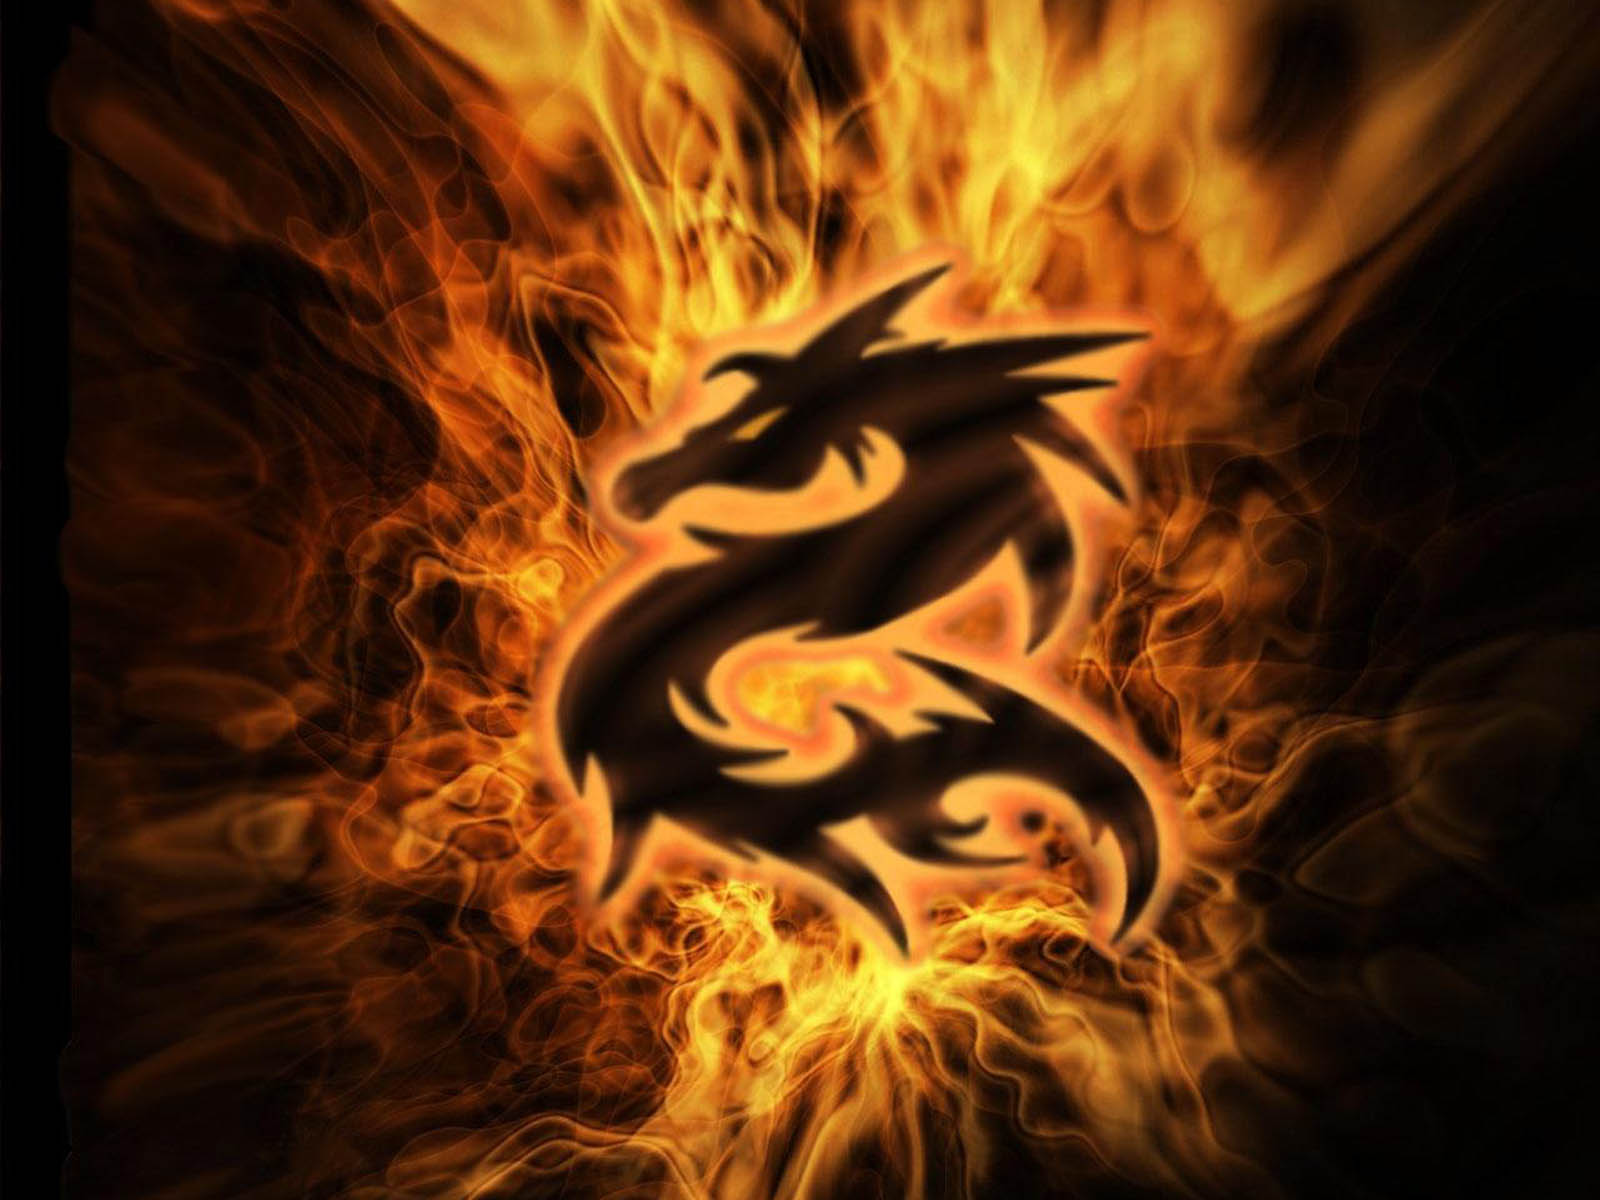 Tag Dragon Wallpapers Images Photos Pictures and Backgrounds for 1600x1200